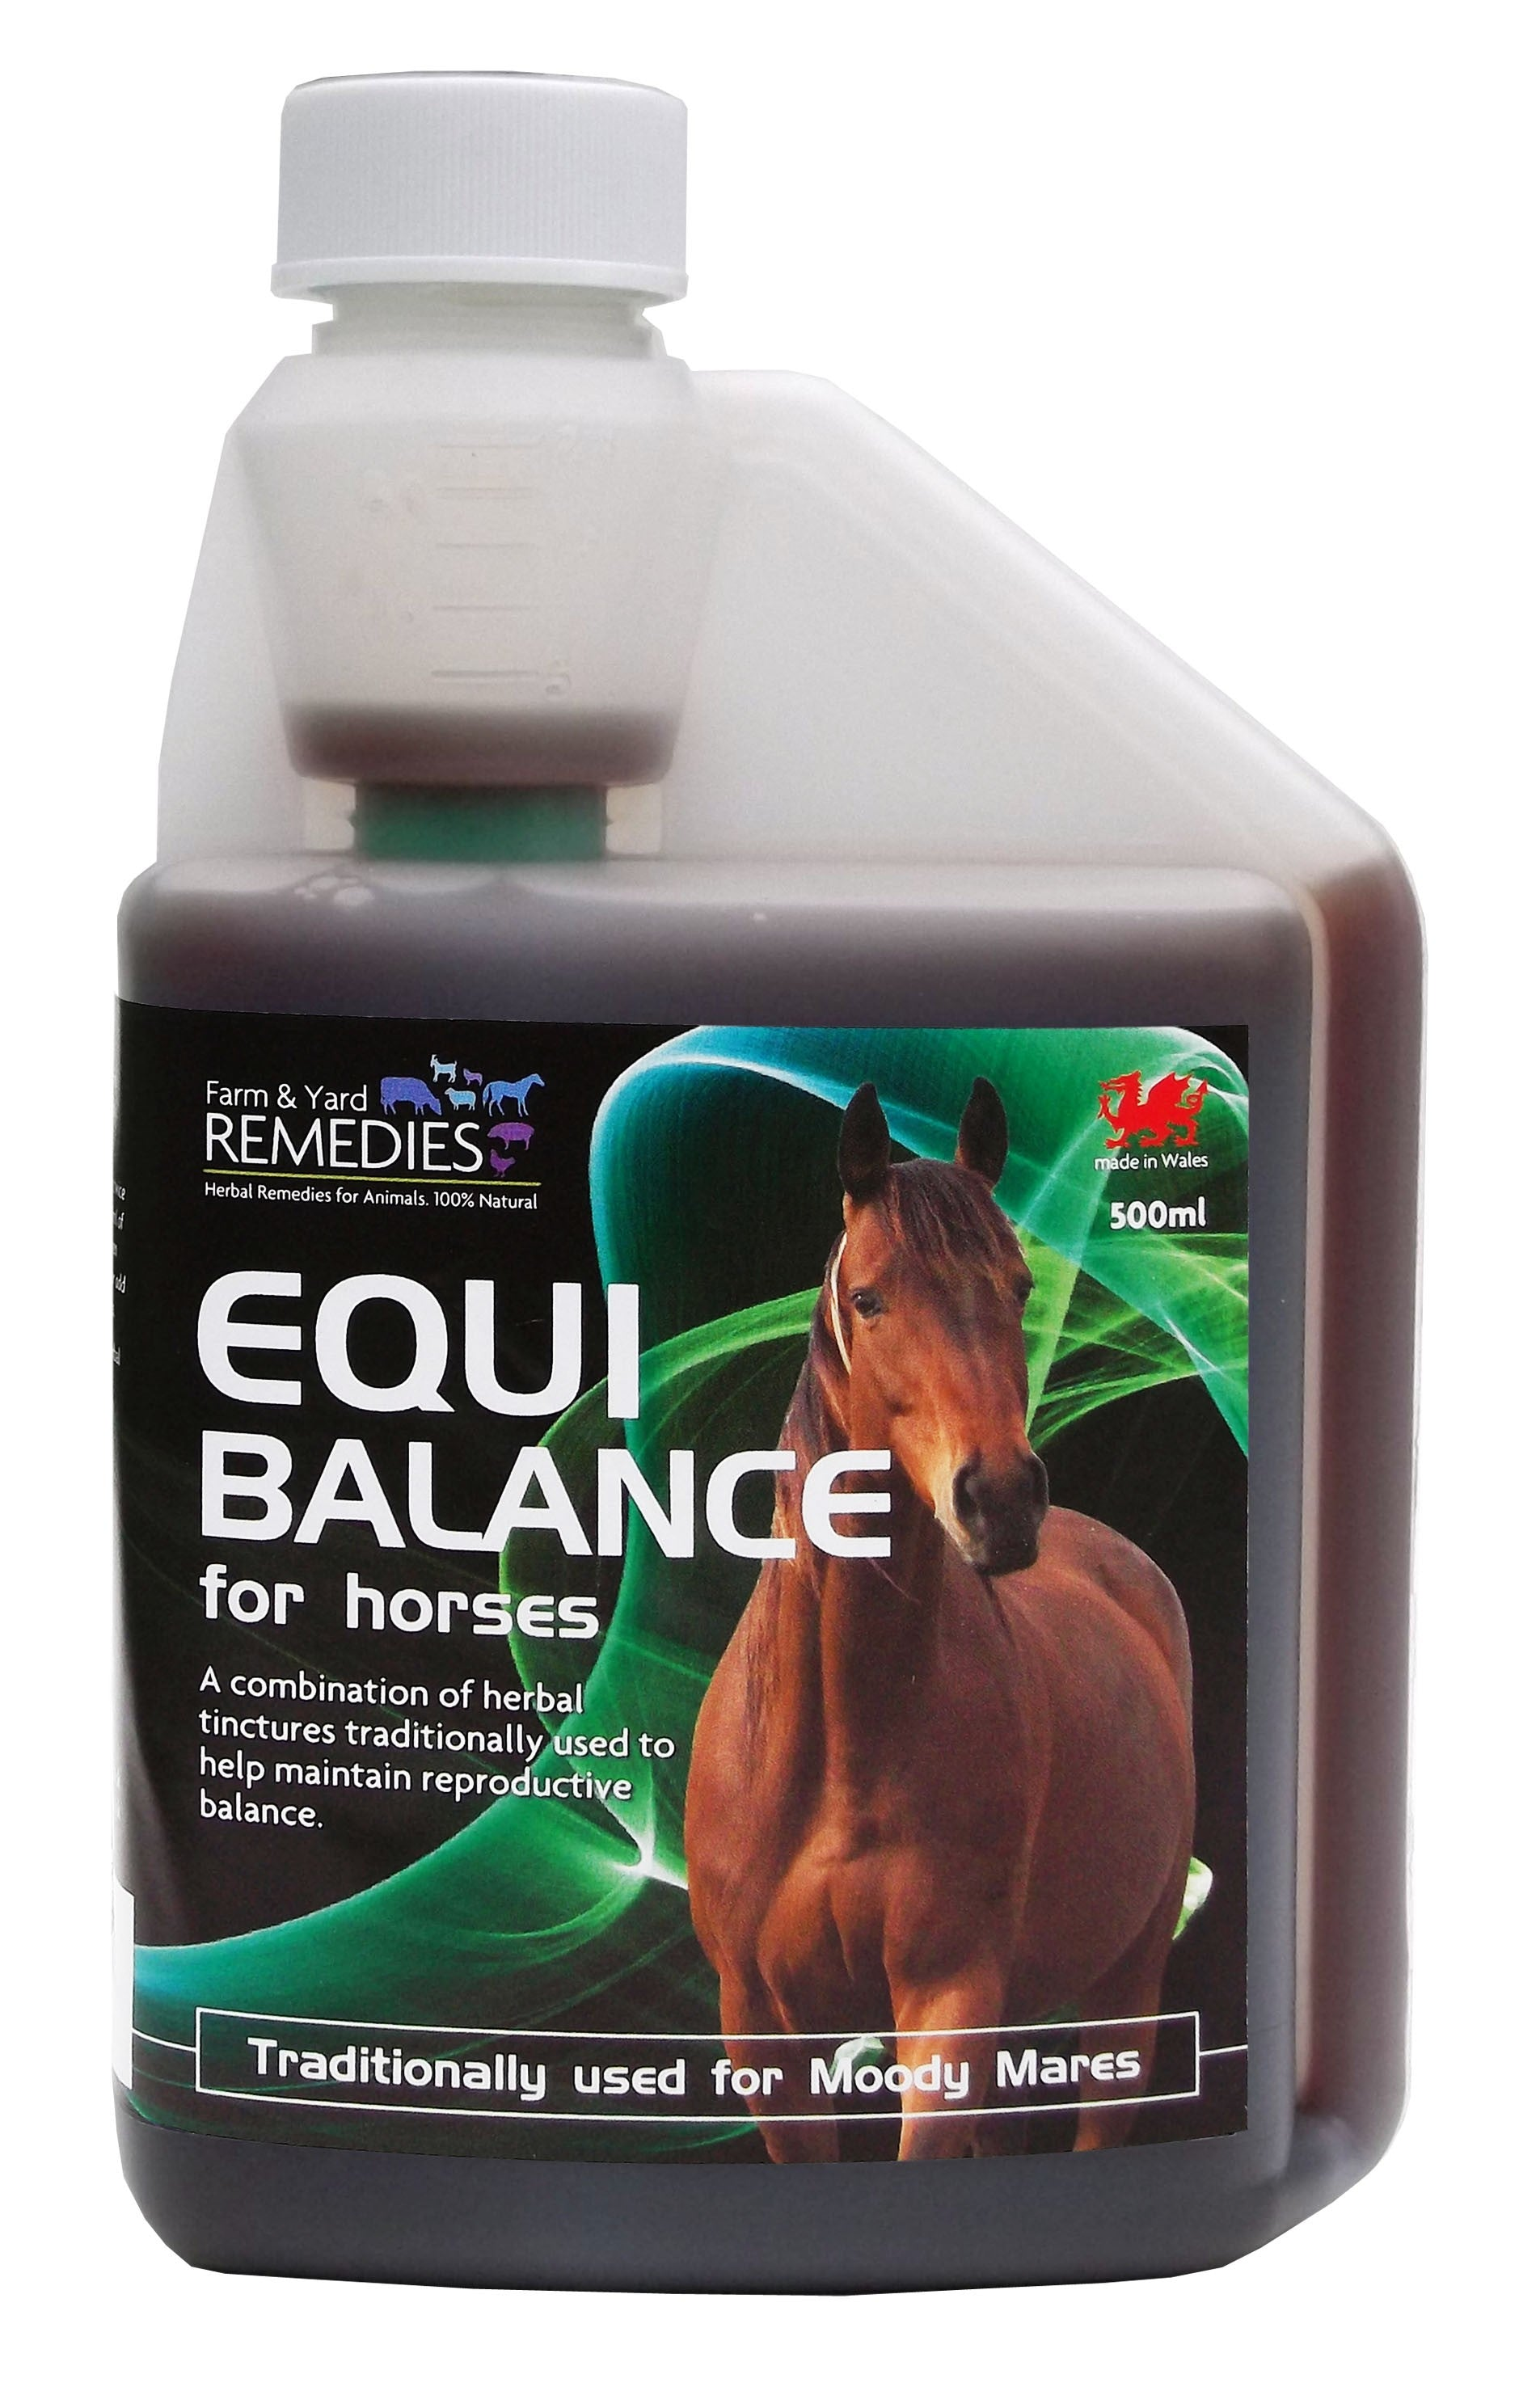 Farm and Yard Remedies Equi Balance Hormonal Support Herbal Supplement for Horses All Natural